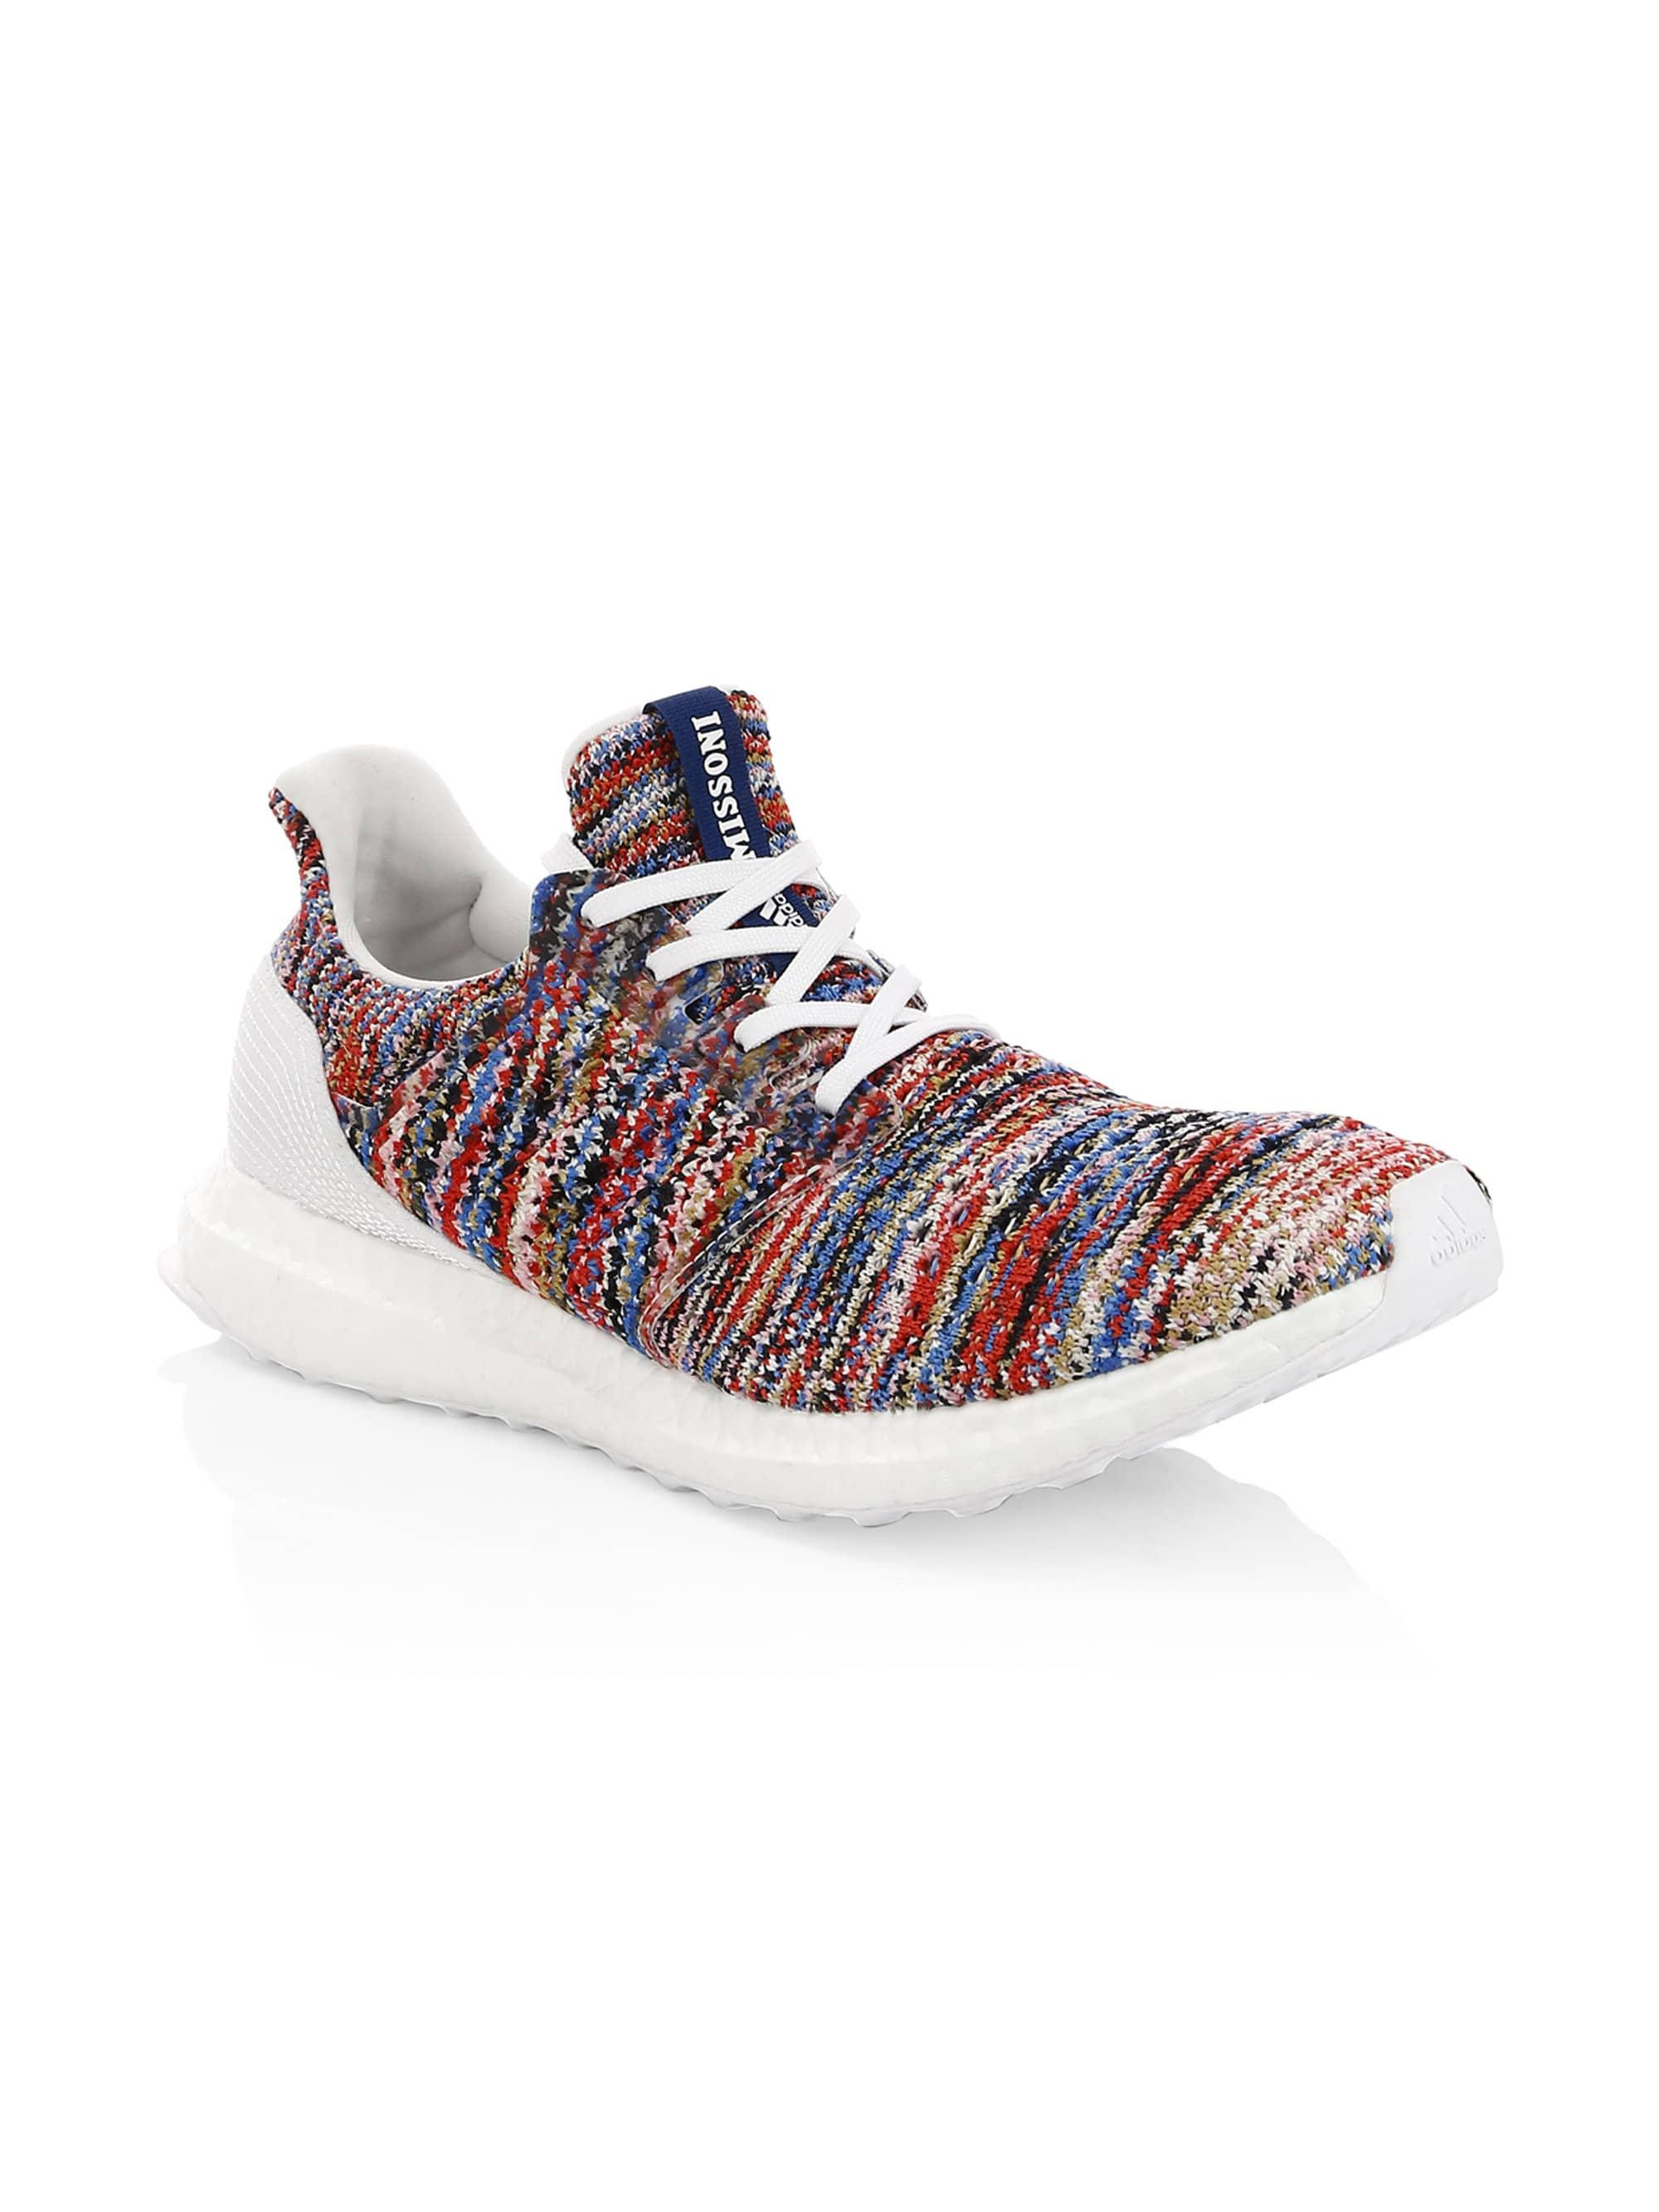 finest selection be719 9cfbd adidas By Raf Simons Men s Ultraboost Clima X Missoni Knit Runners ...